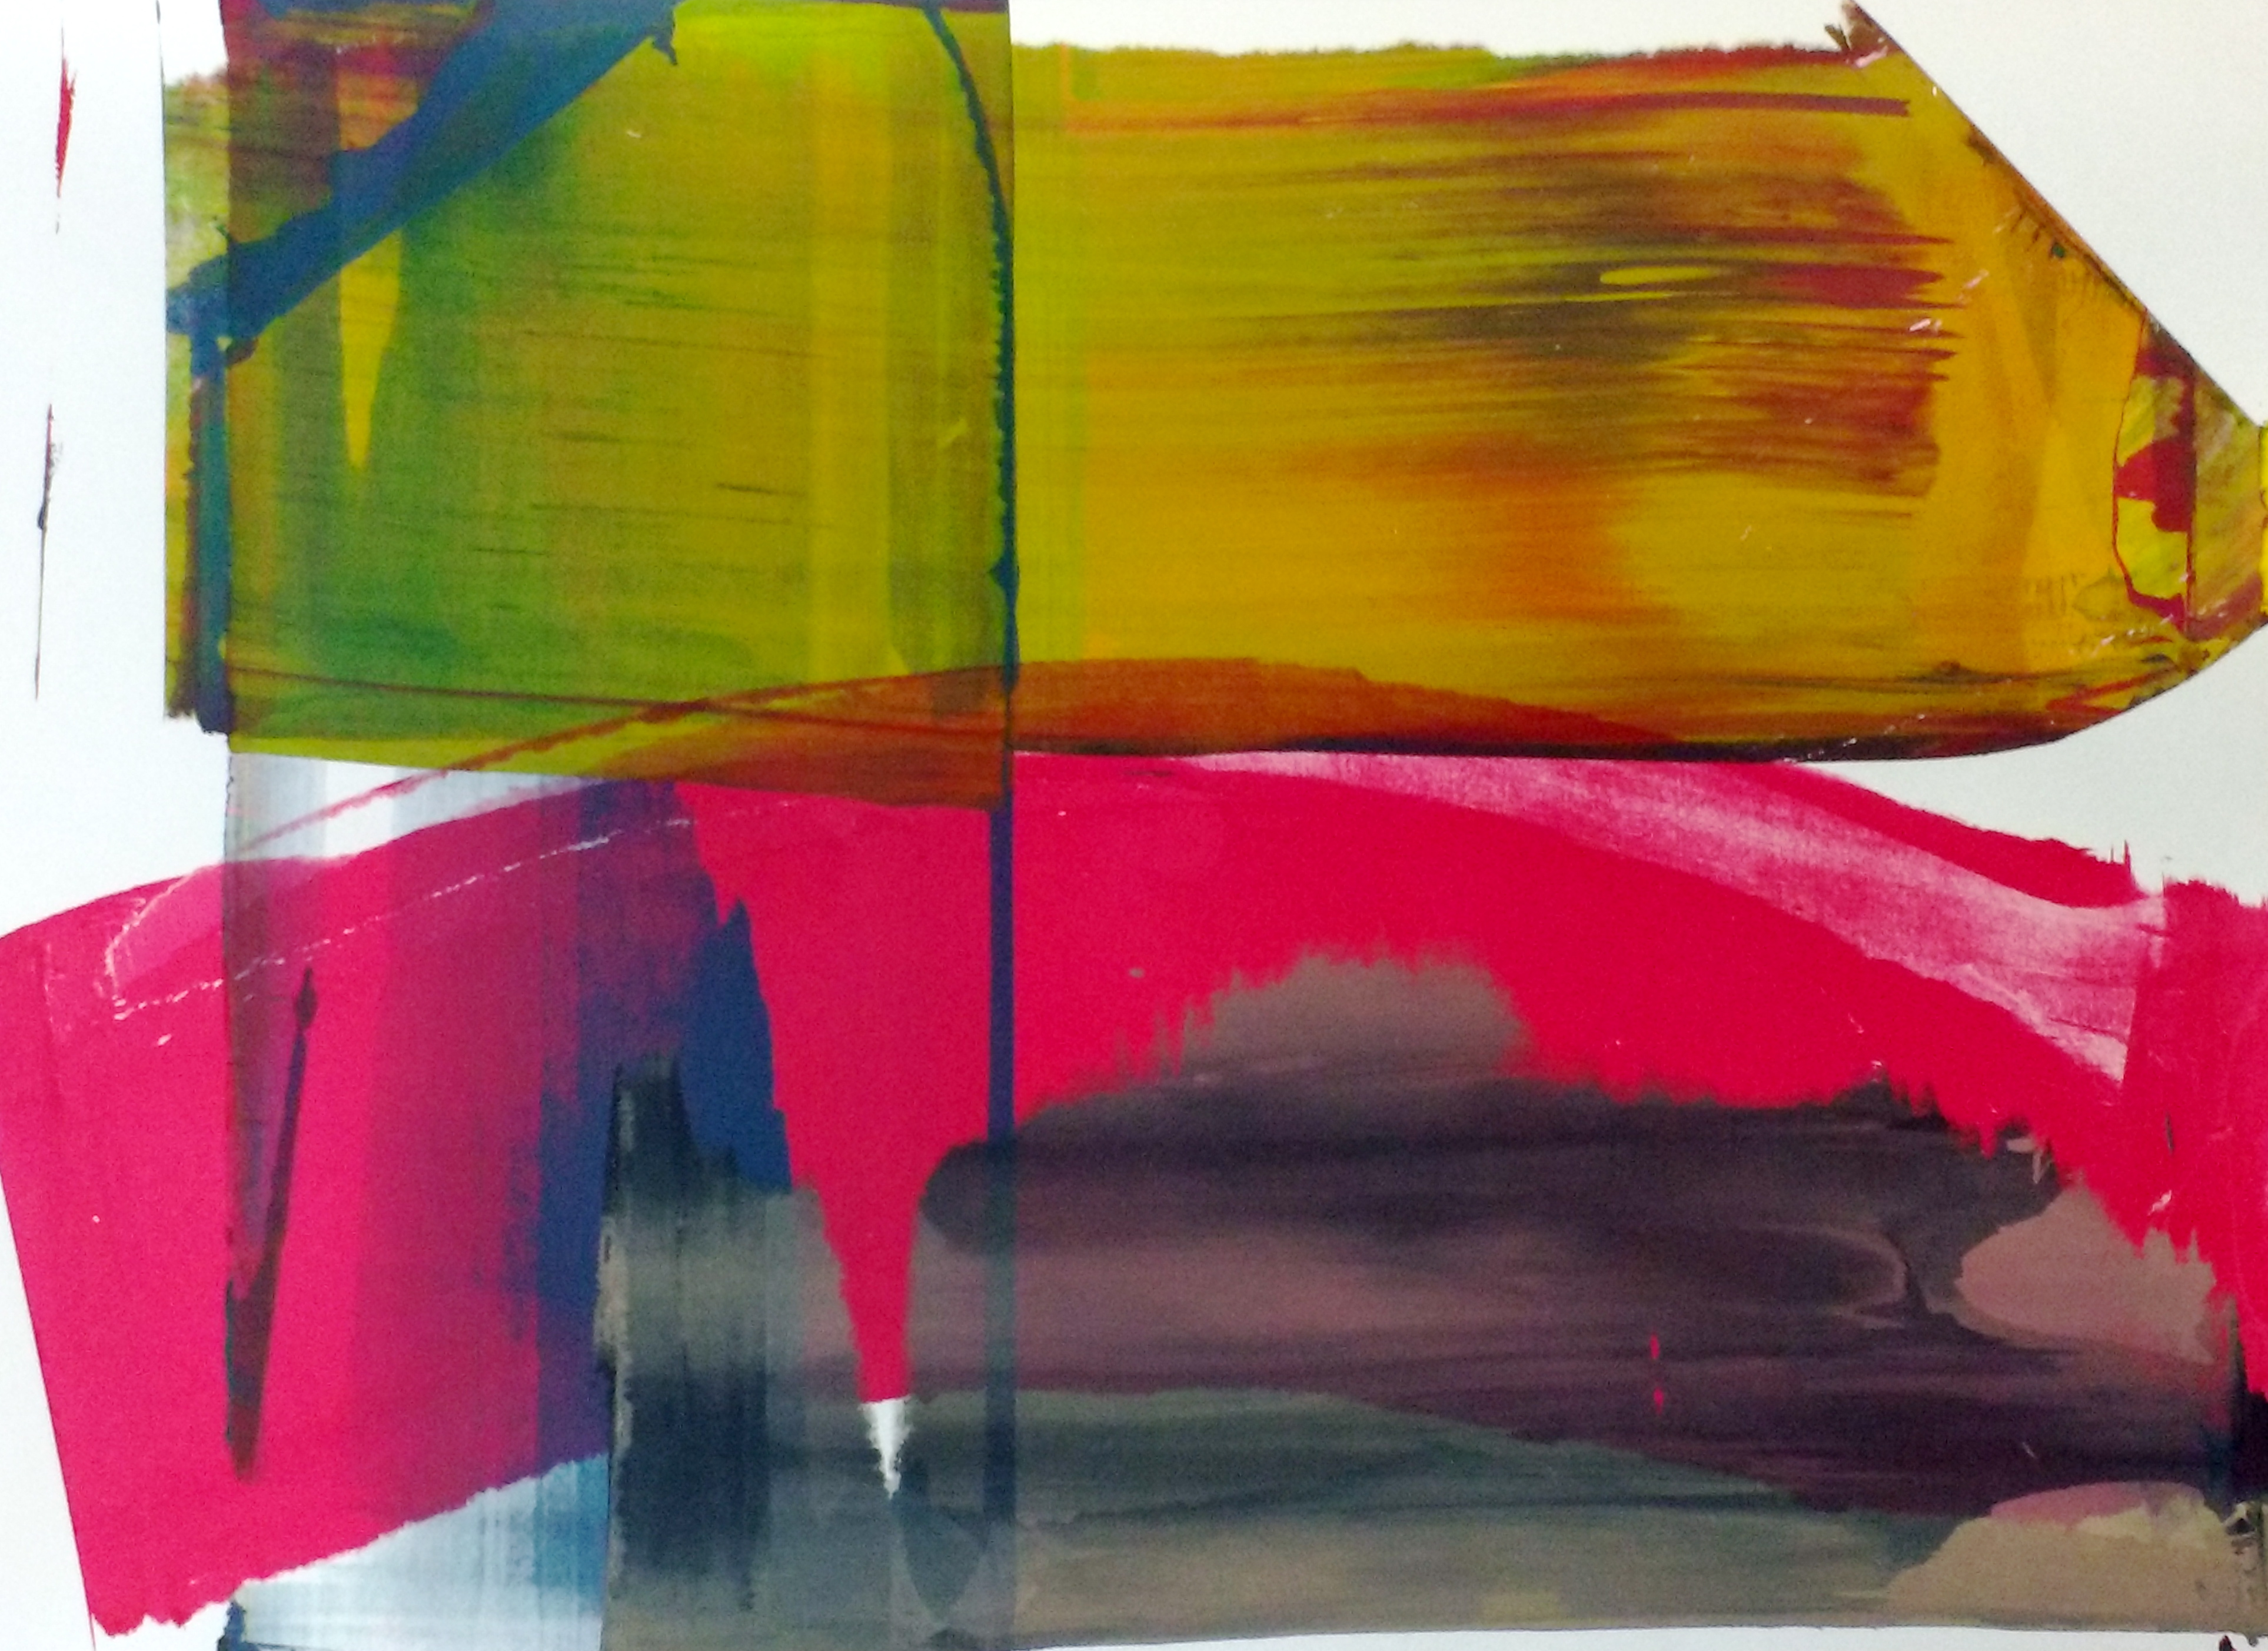 Squeegee & Roller 2, Printing ink on paper